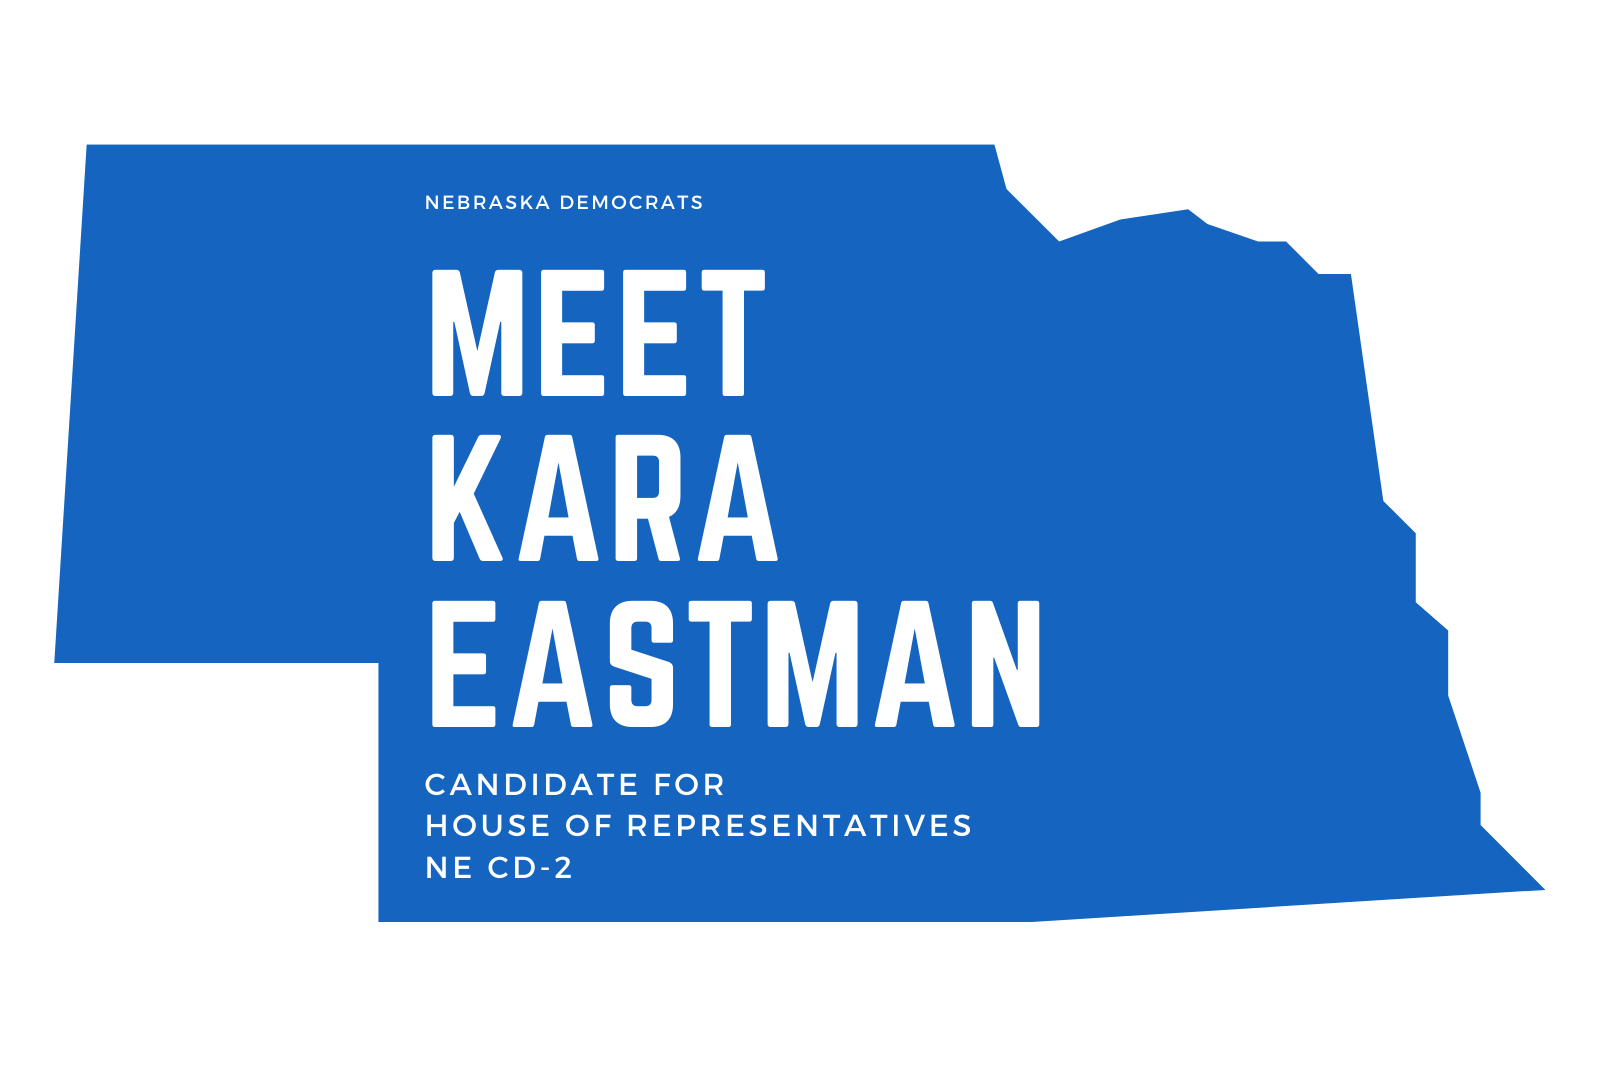 Meet Kara Eastman, Candidate for NE CD-2